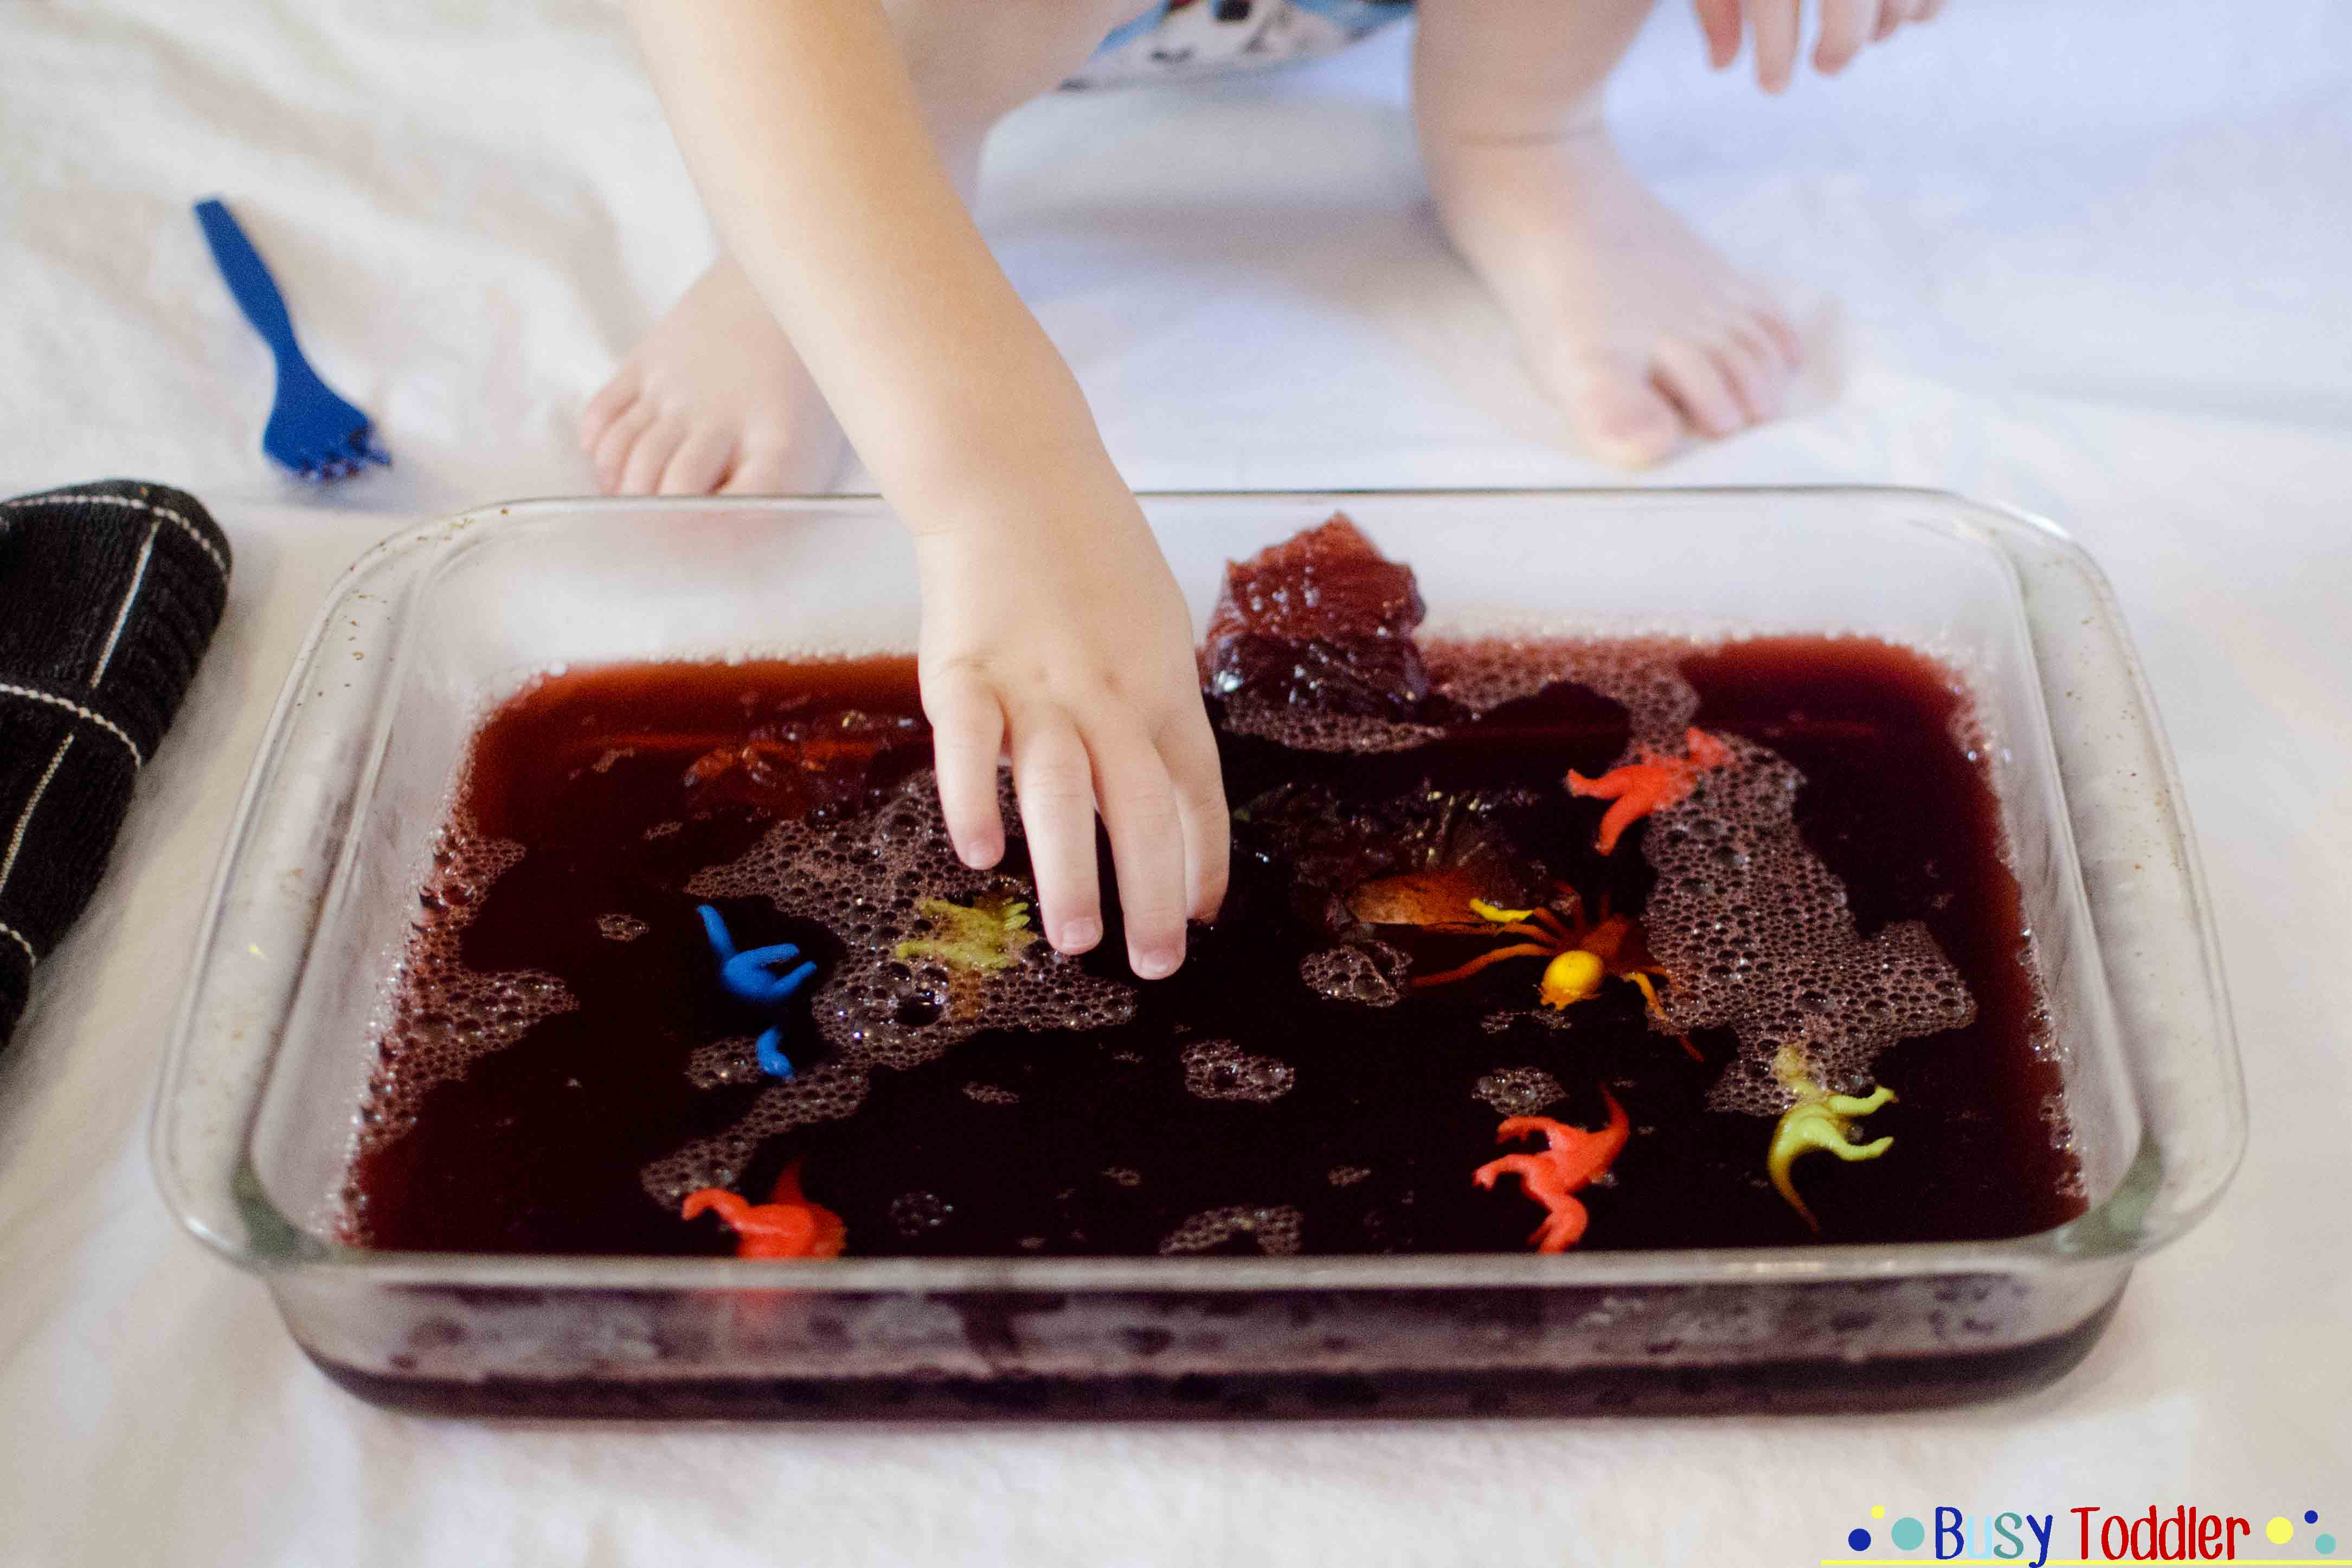 jello dig: a sticky and delicious toddler activity